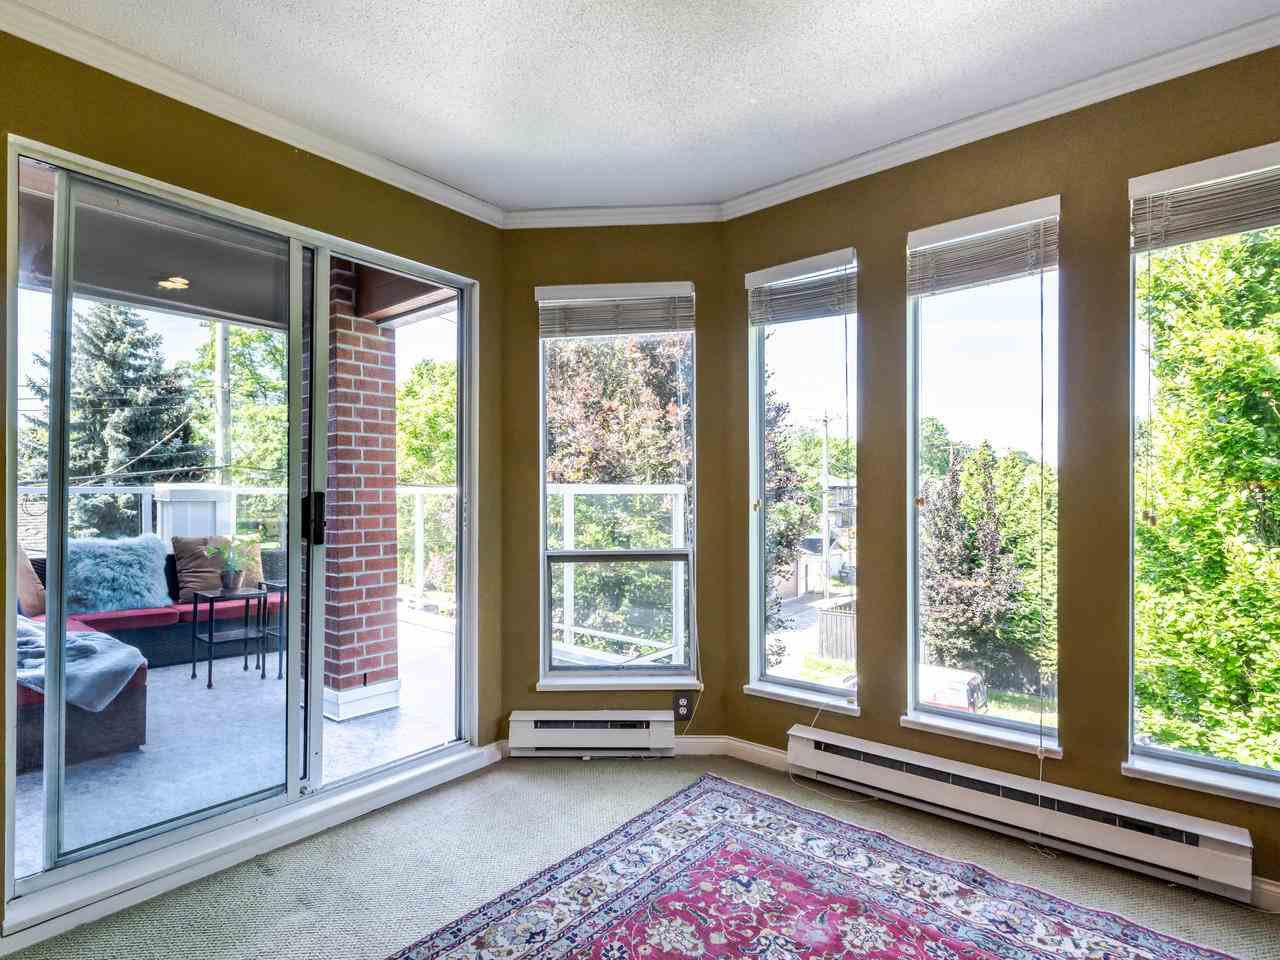 """Photo 7: Photos: 303 2288 W 12TH Avenue in Vancouver: Kitsilano Condo for sale in """"Connaught Point"""" (Vancouver West)  : MLS®# R2494985"""